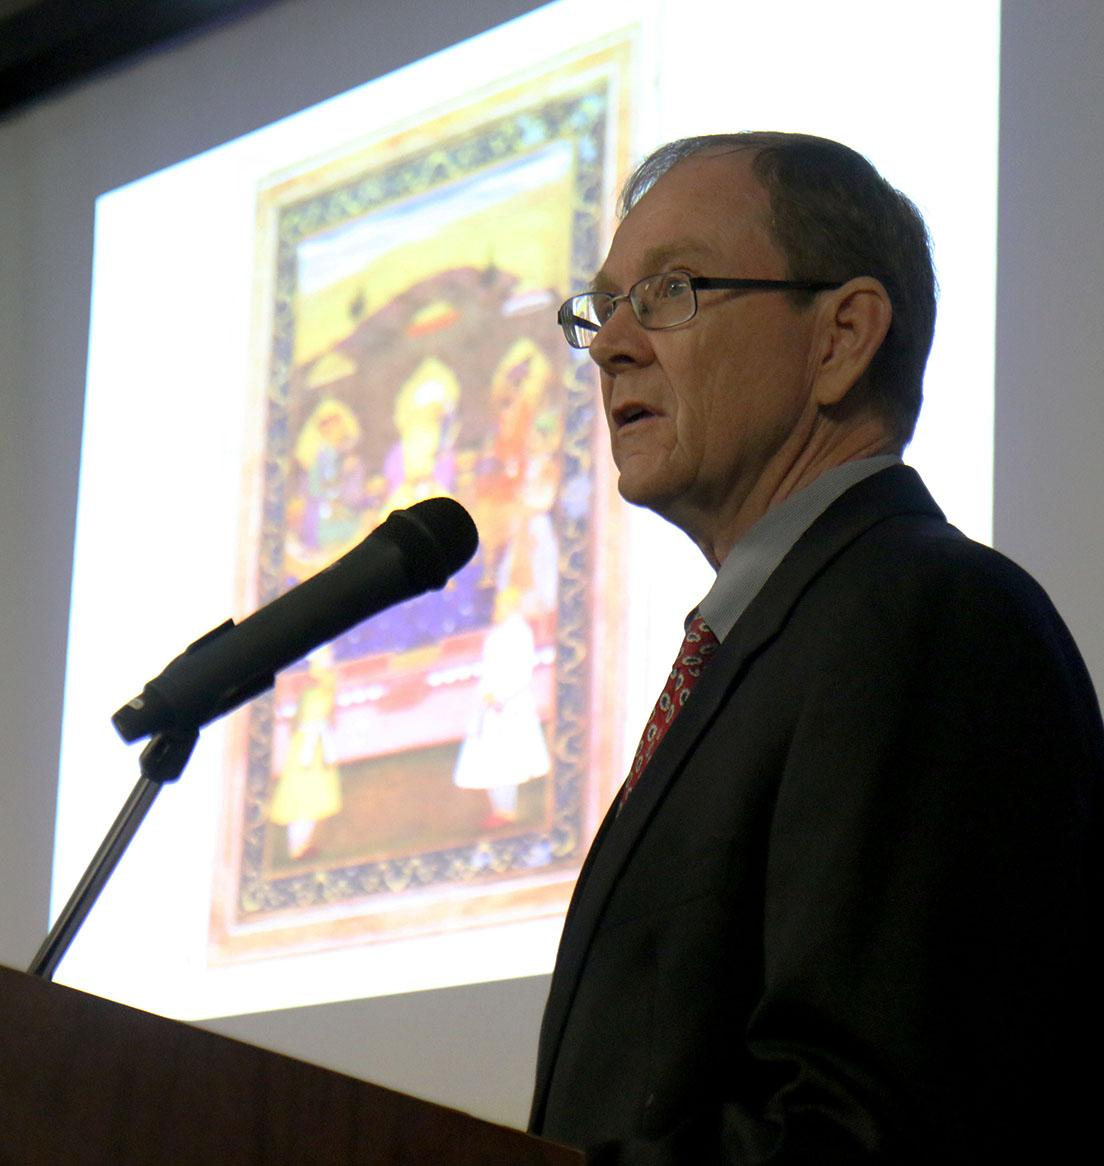 Dr. Timothy Cahill, associate religion professor, presents his work on precolonial indian literature. The lecture was a part of the the H. James Yamauchi, S.J., Lectures in Religion series for the spring of 2016.